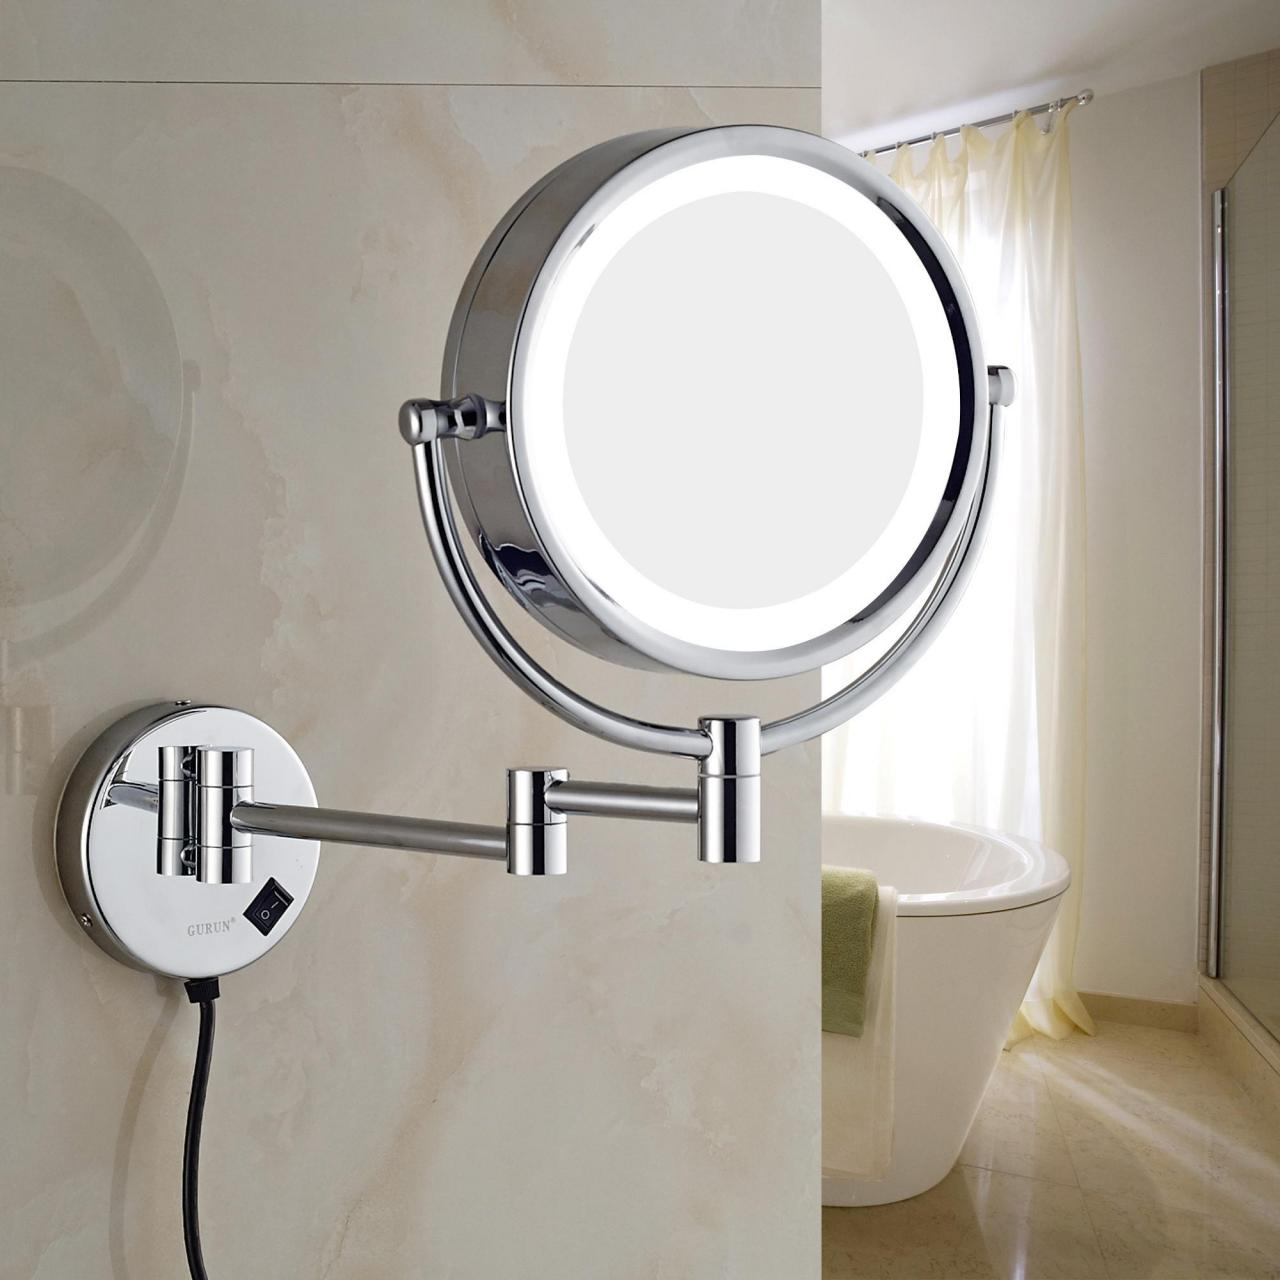 Wall hanging mirror Manufactures